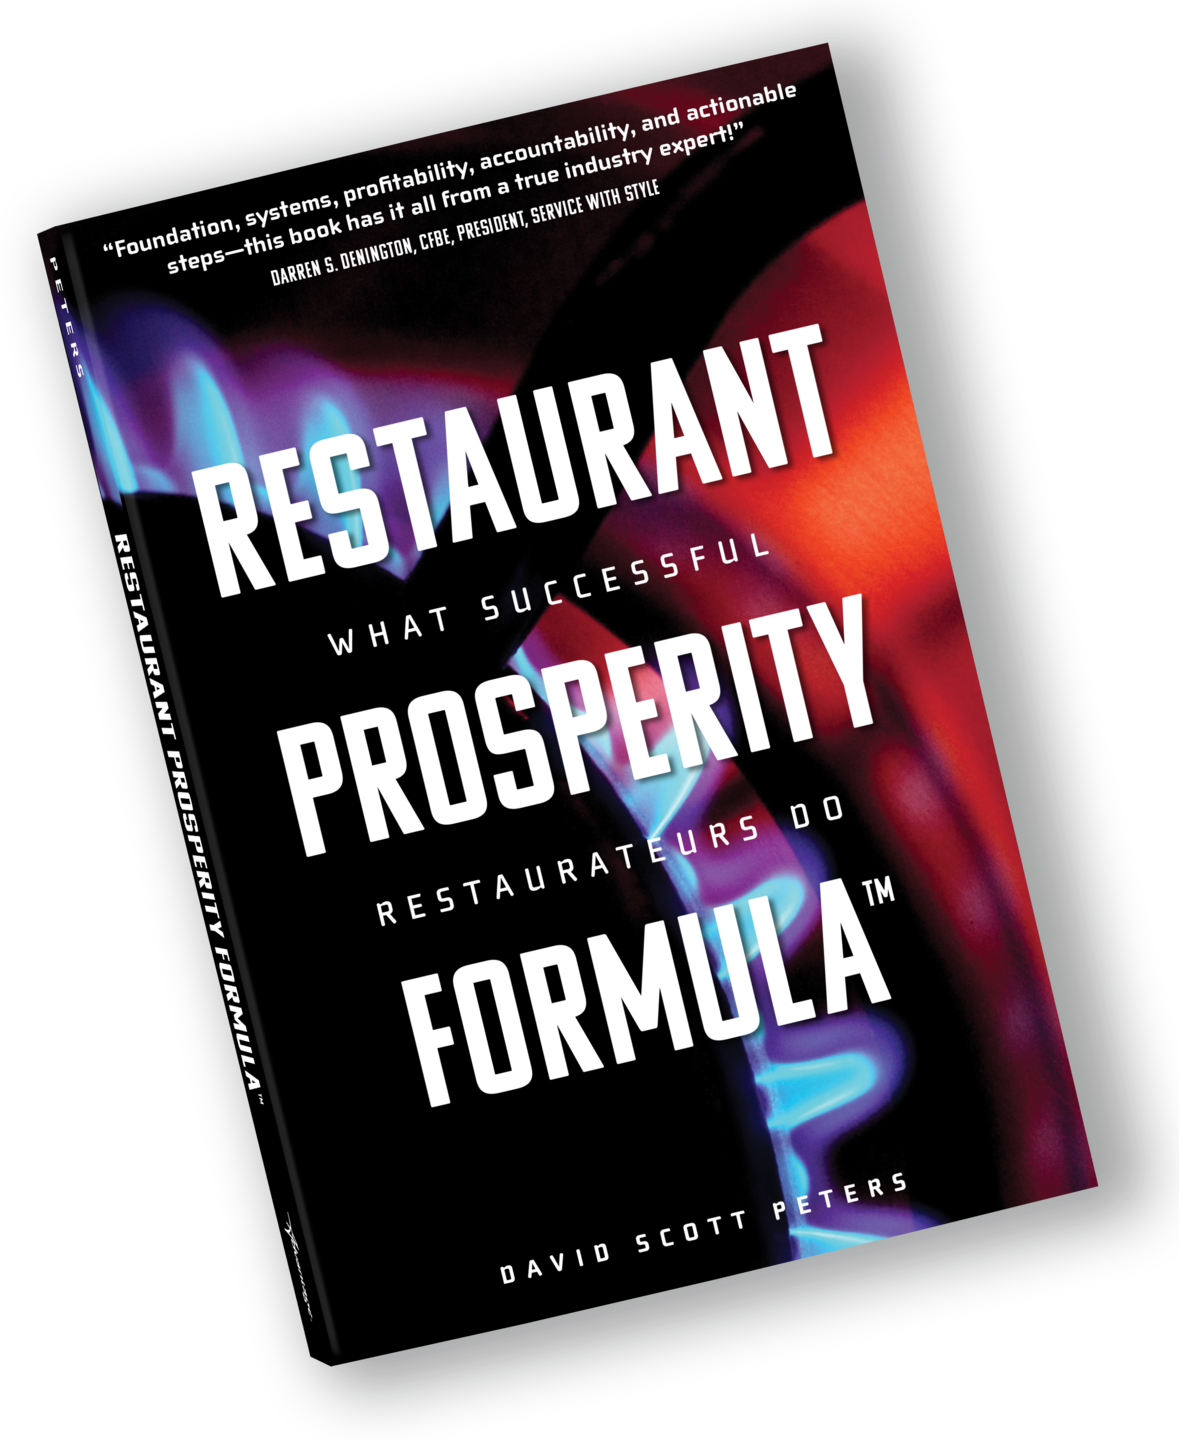 Restaurant Prosperity Formula, David Scott Peters, Restaurant Prosperity Coaching, Food Cost, Labor Cost